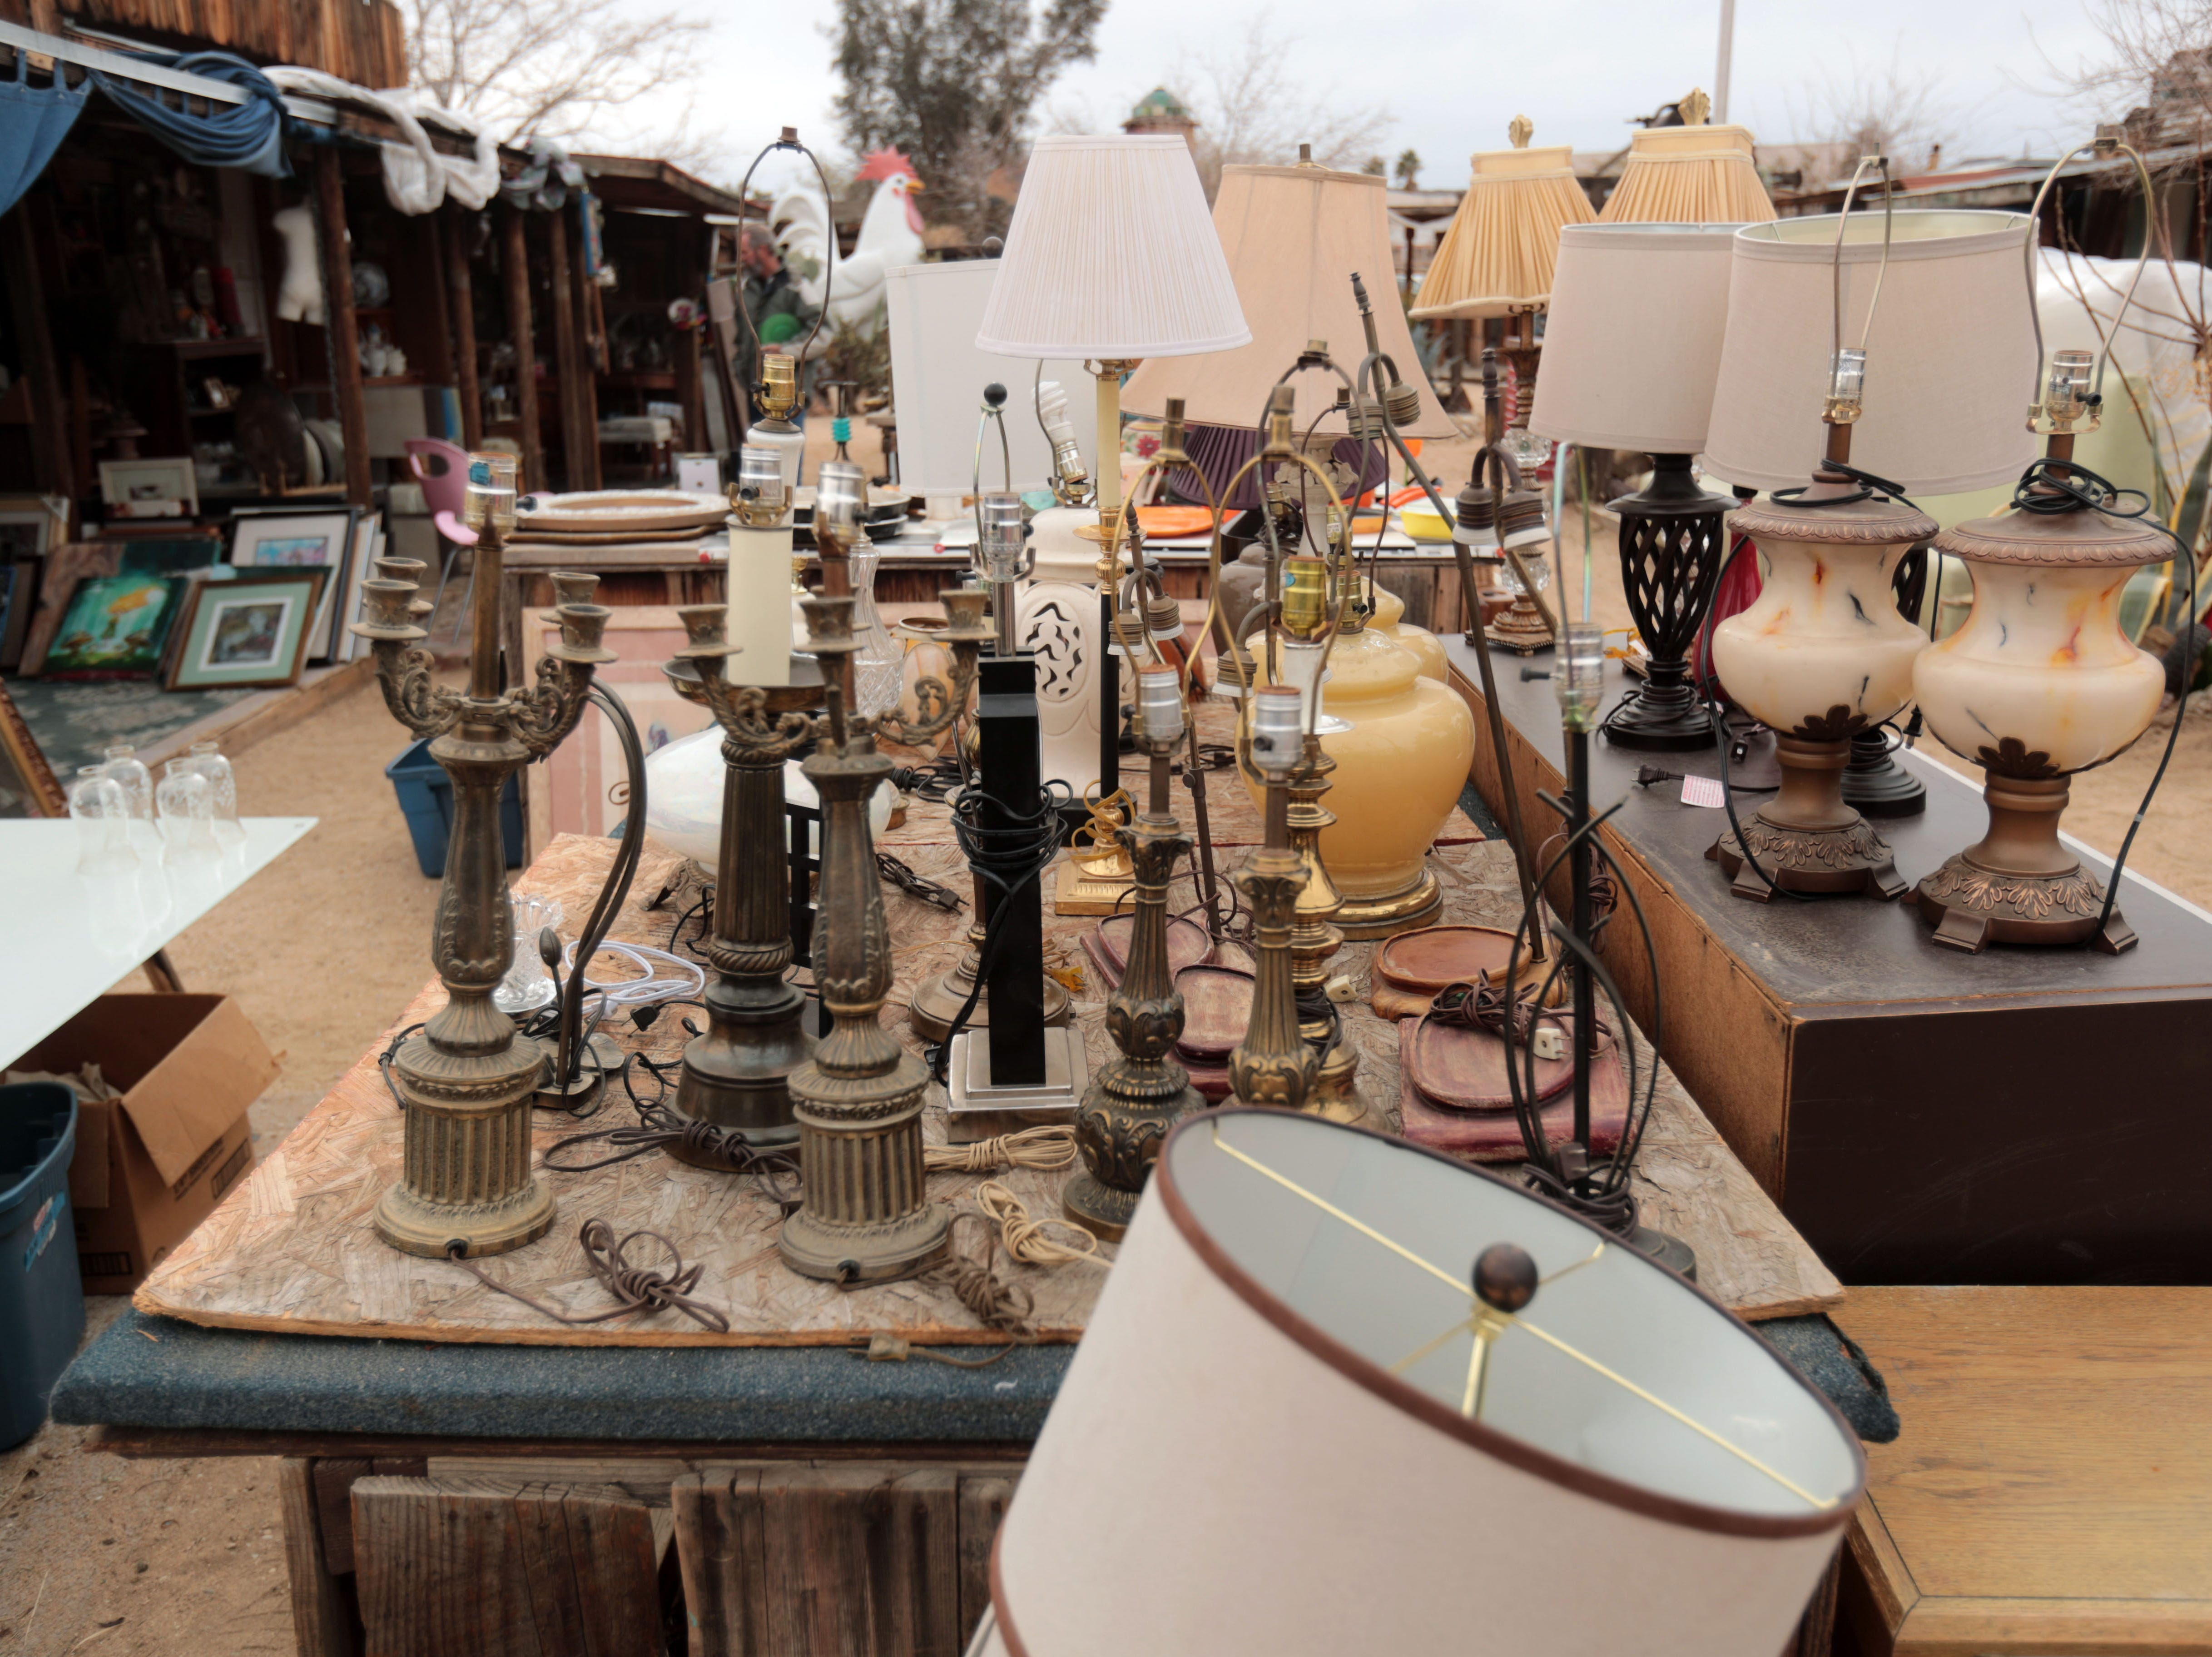 A collection of lamp stands for sale at the Sky Village Swap Meet in Yucca Valley on Saturday, January 5, 2019.